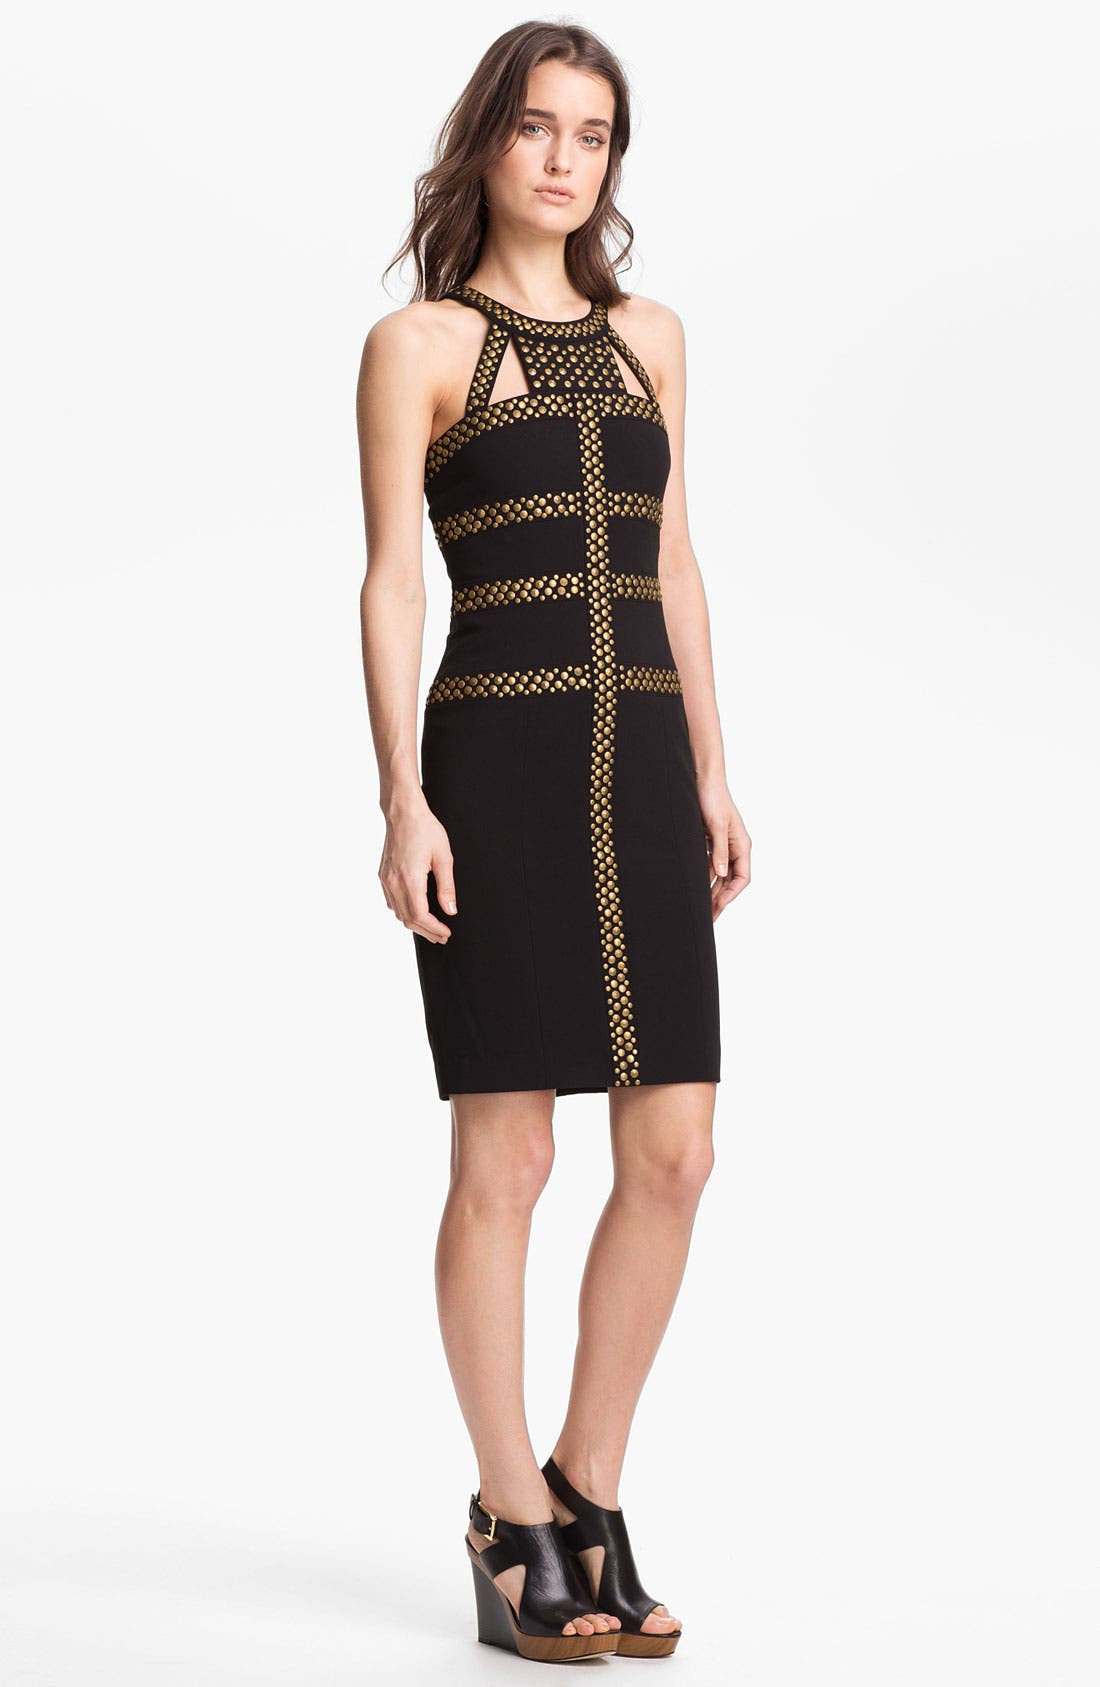 Alternate Image 1 Selected - BCBGMAXAZRIA Studded Sheath Dress